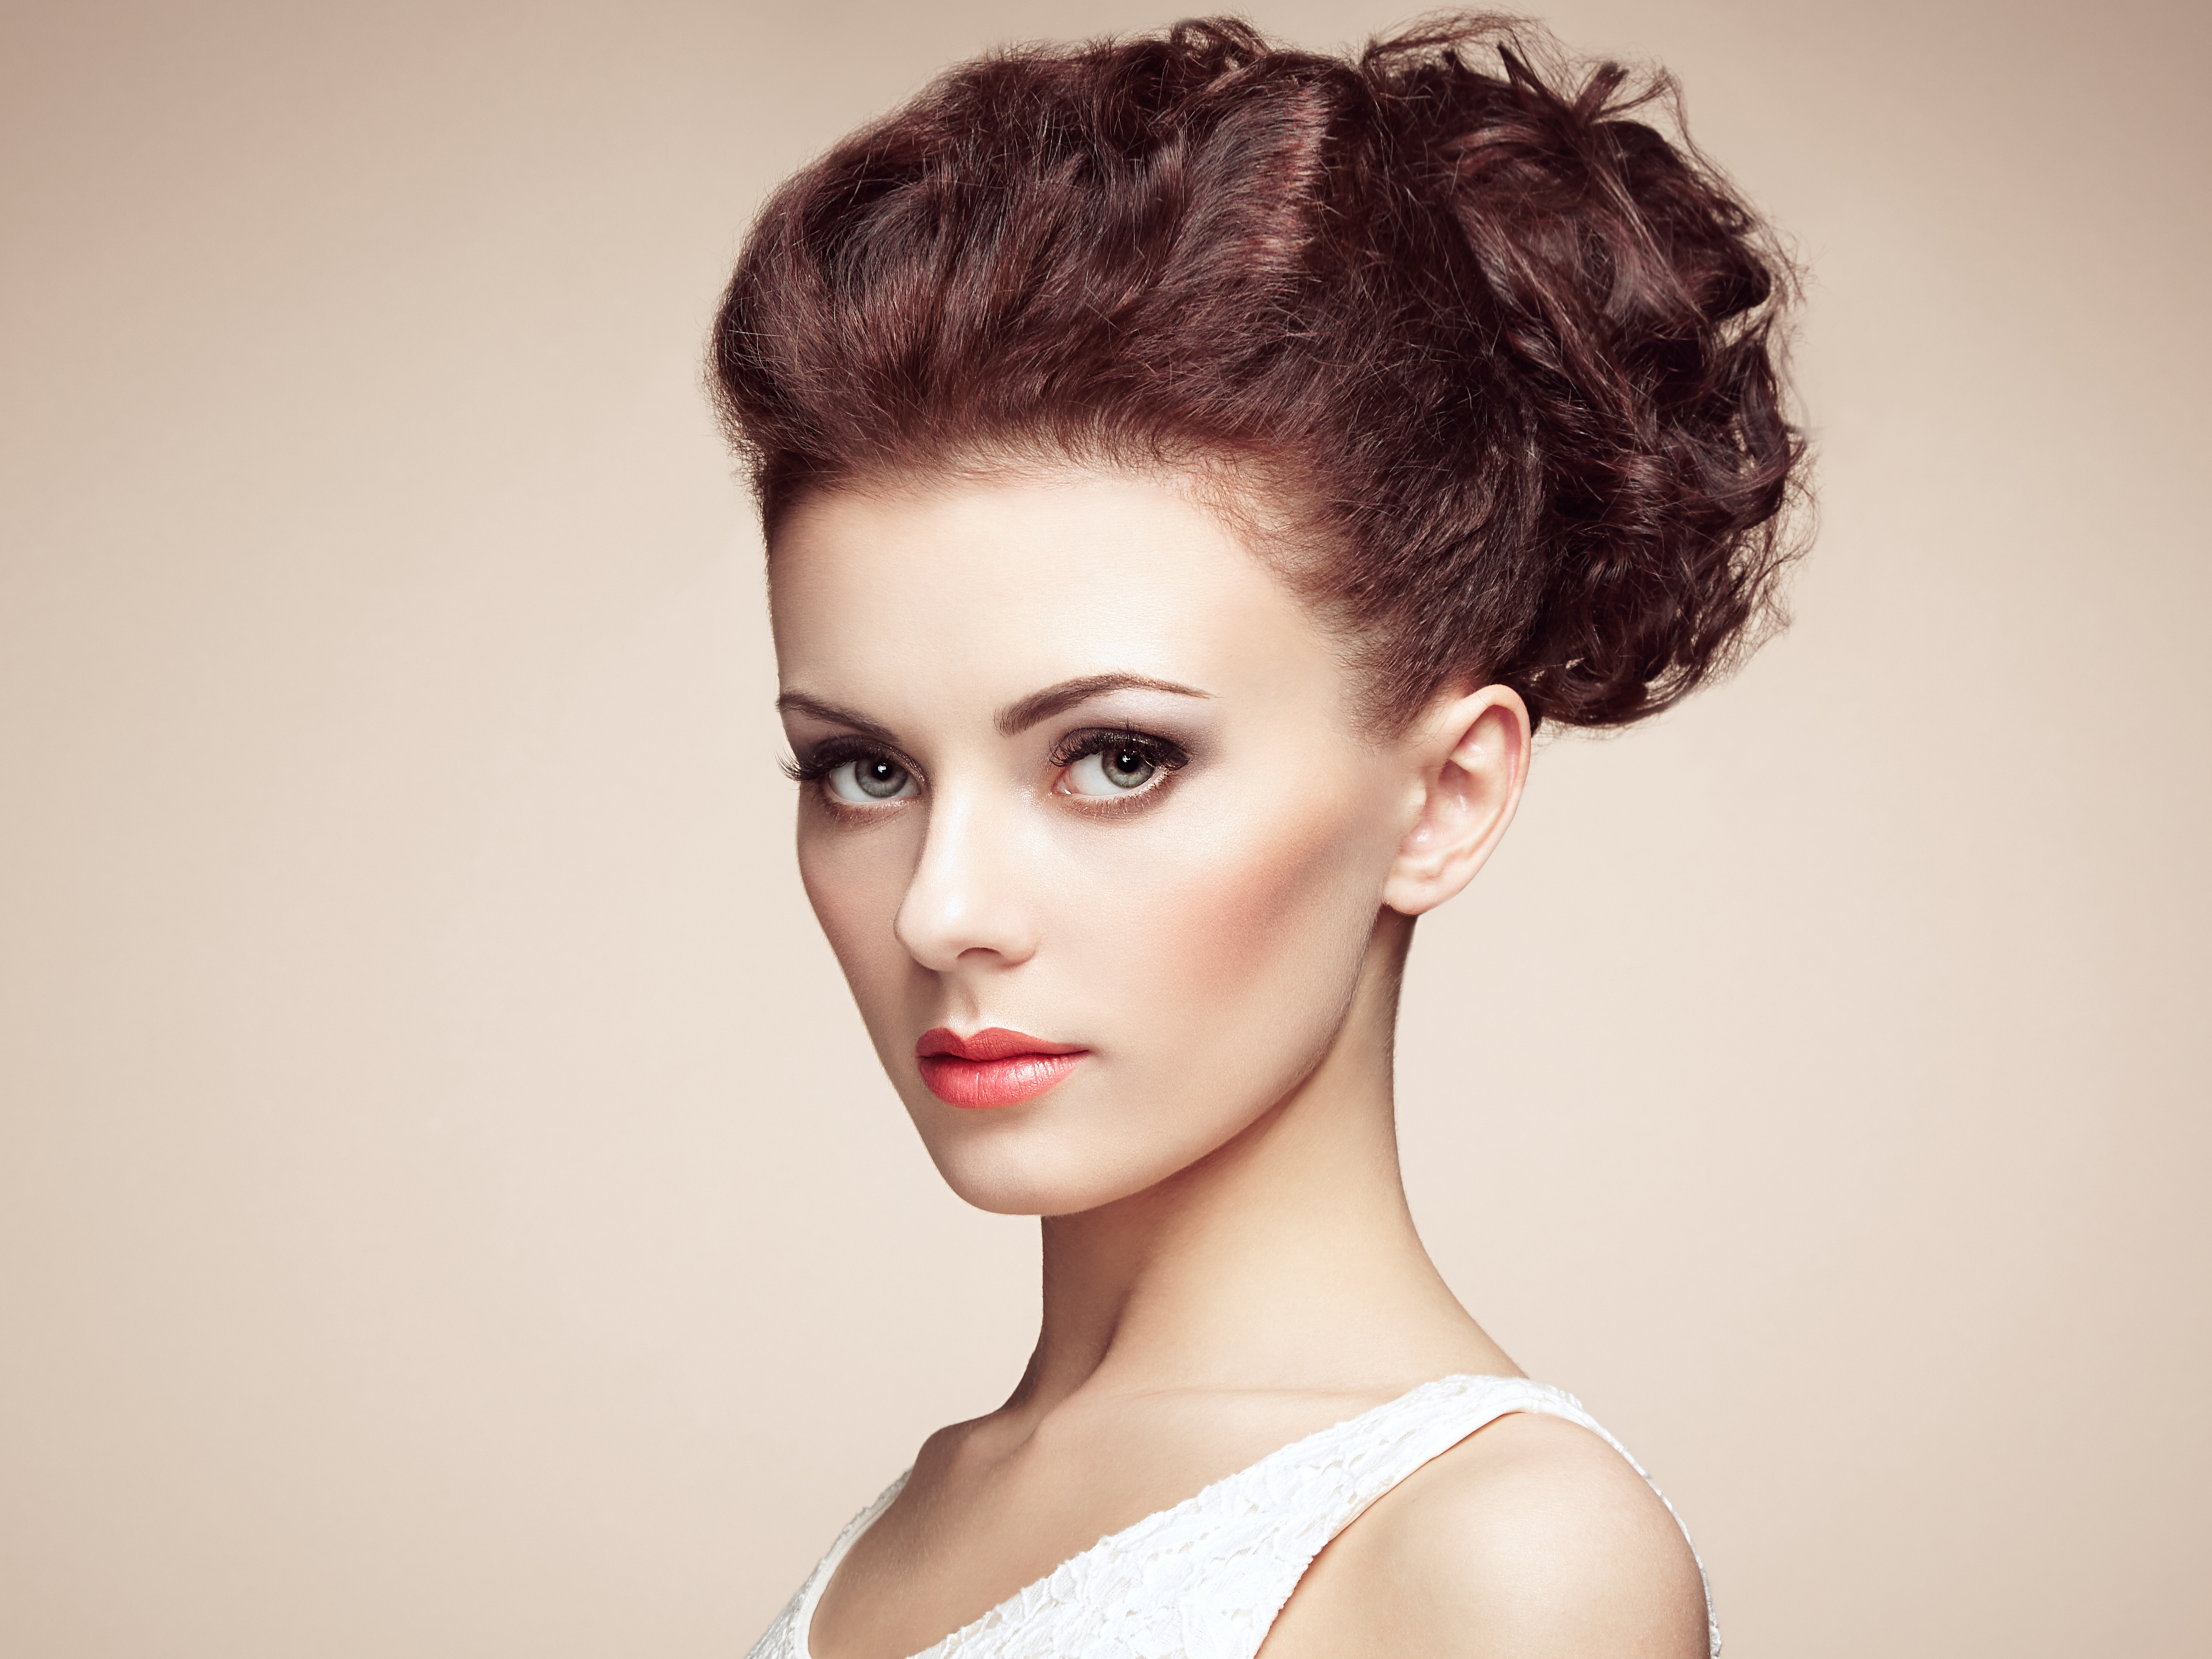 portrait of beautiful sensual woman with elegant hairstyle 8k ultra